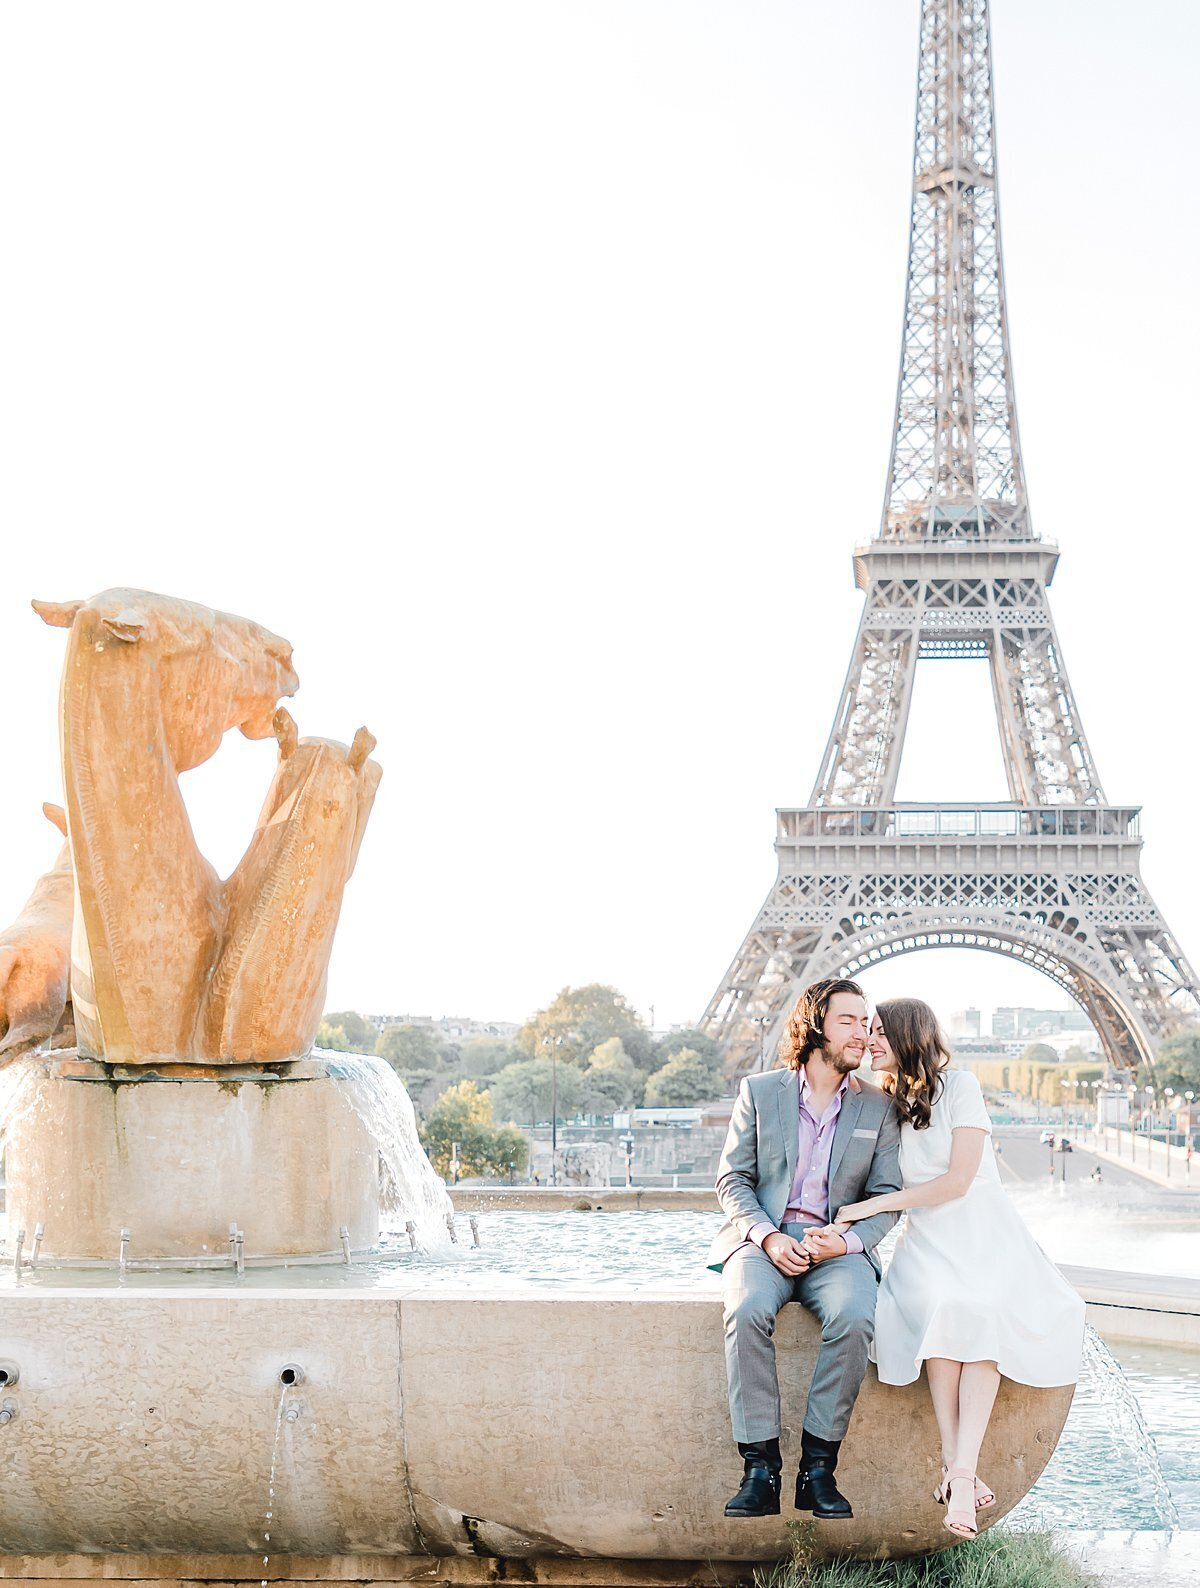 paris-honeymoon-photoshoot-3